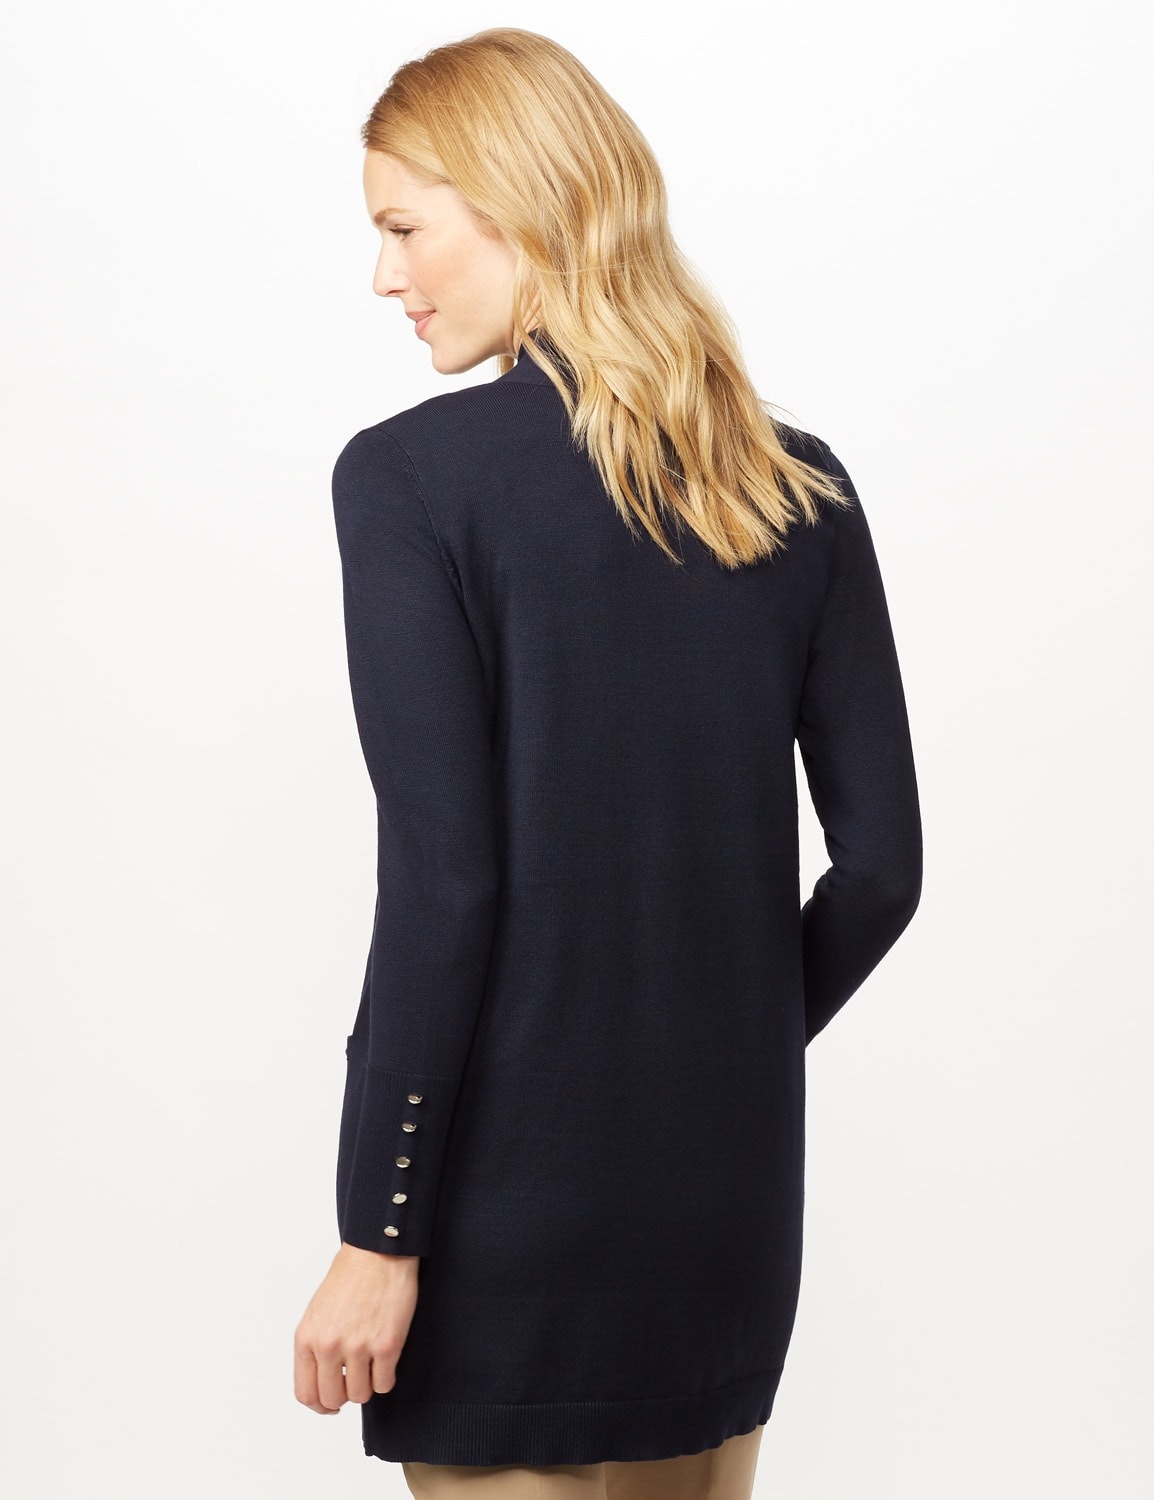 Long Sleeve Two Pocket Button Trim Duster Cardigan - Navy - Back